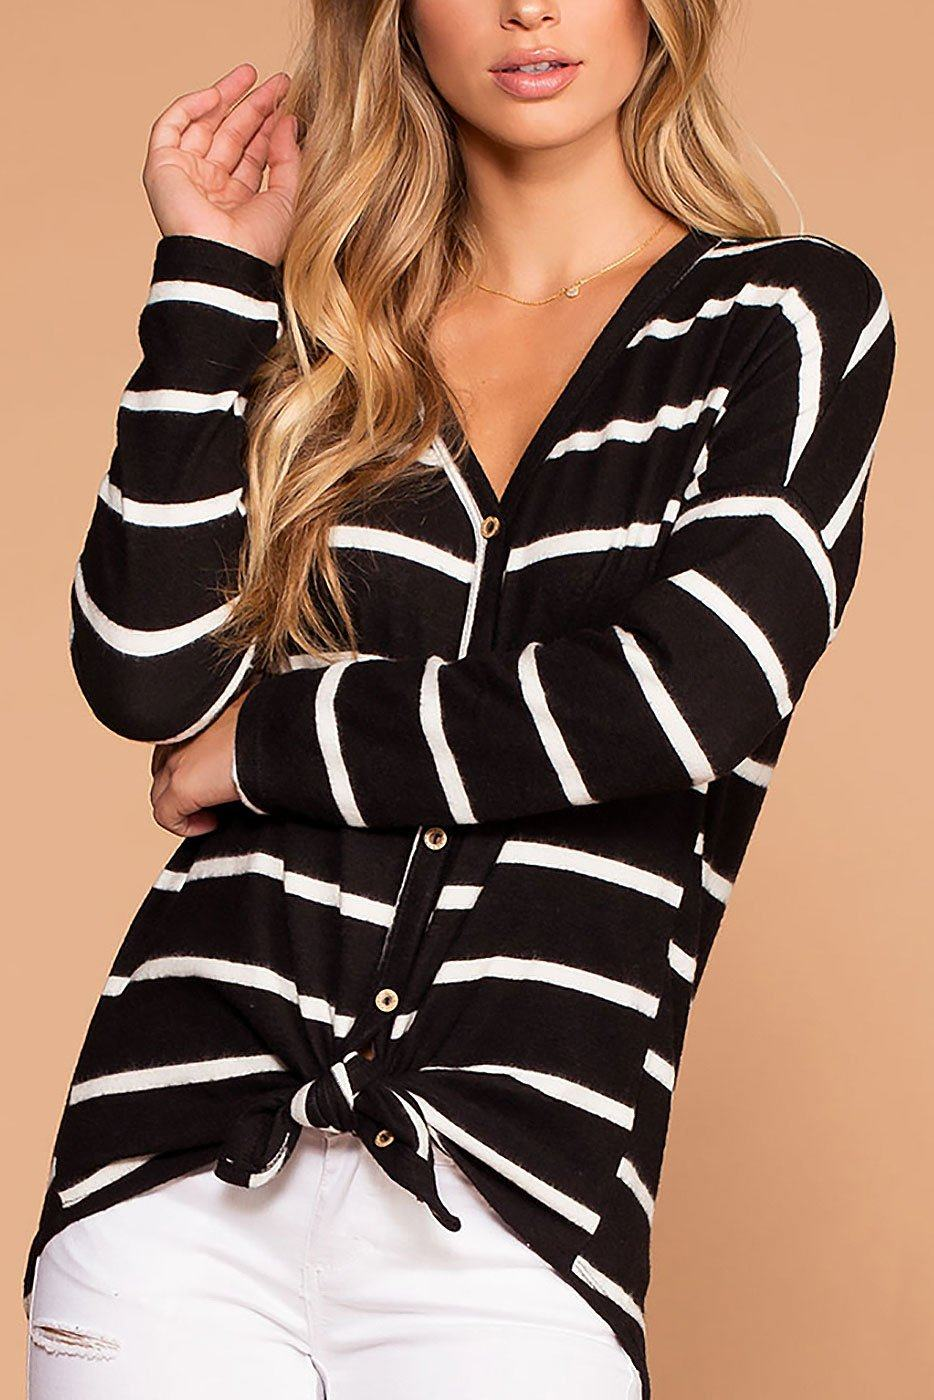 Colette Black And White Stripe Brushed Knit Tie-Front Sweater | White Birch